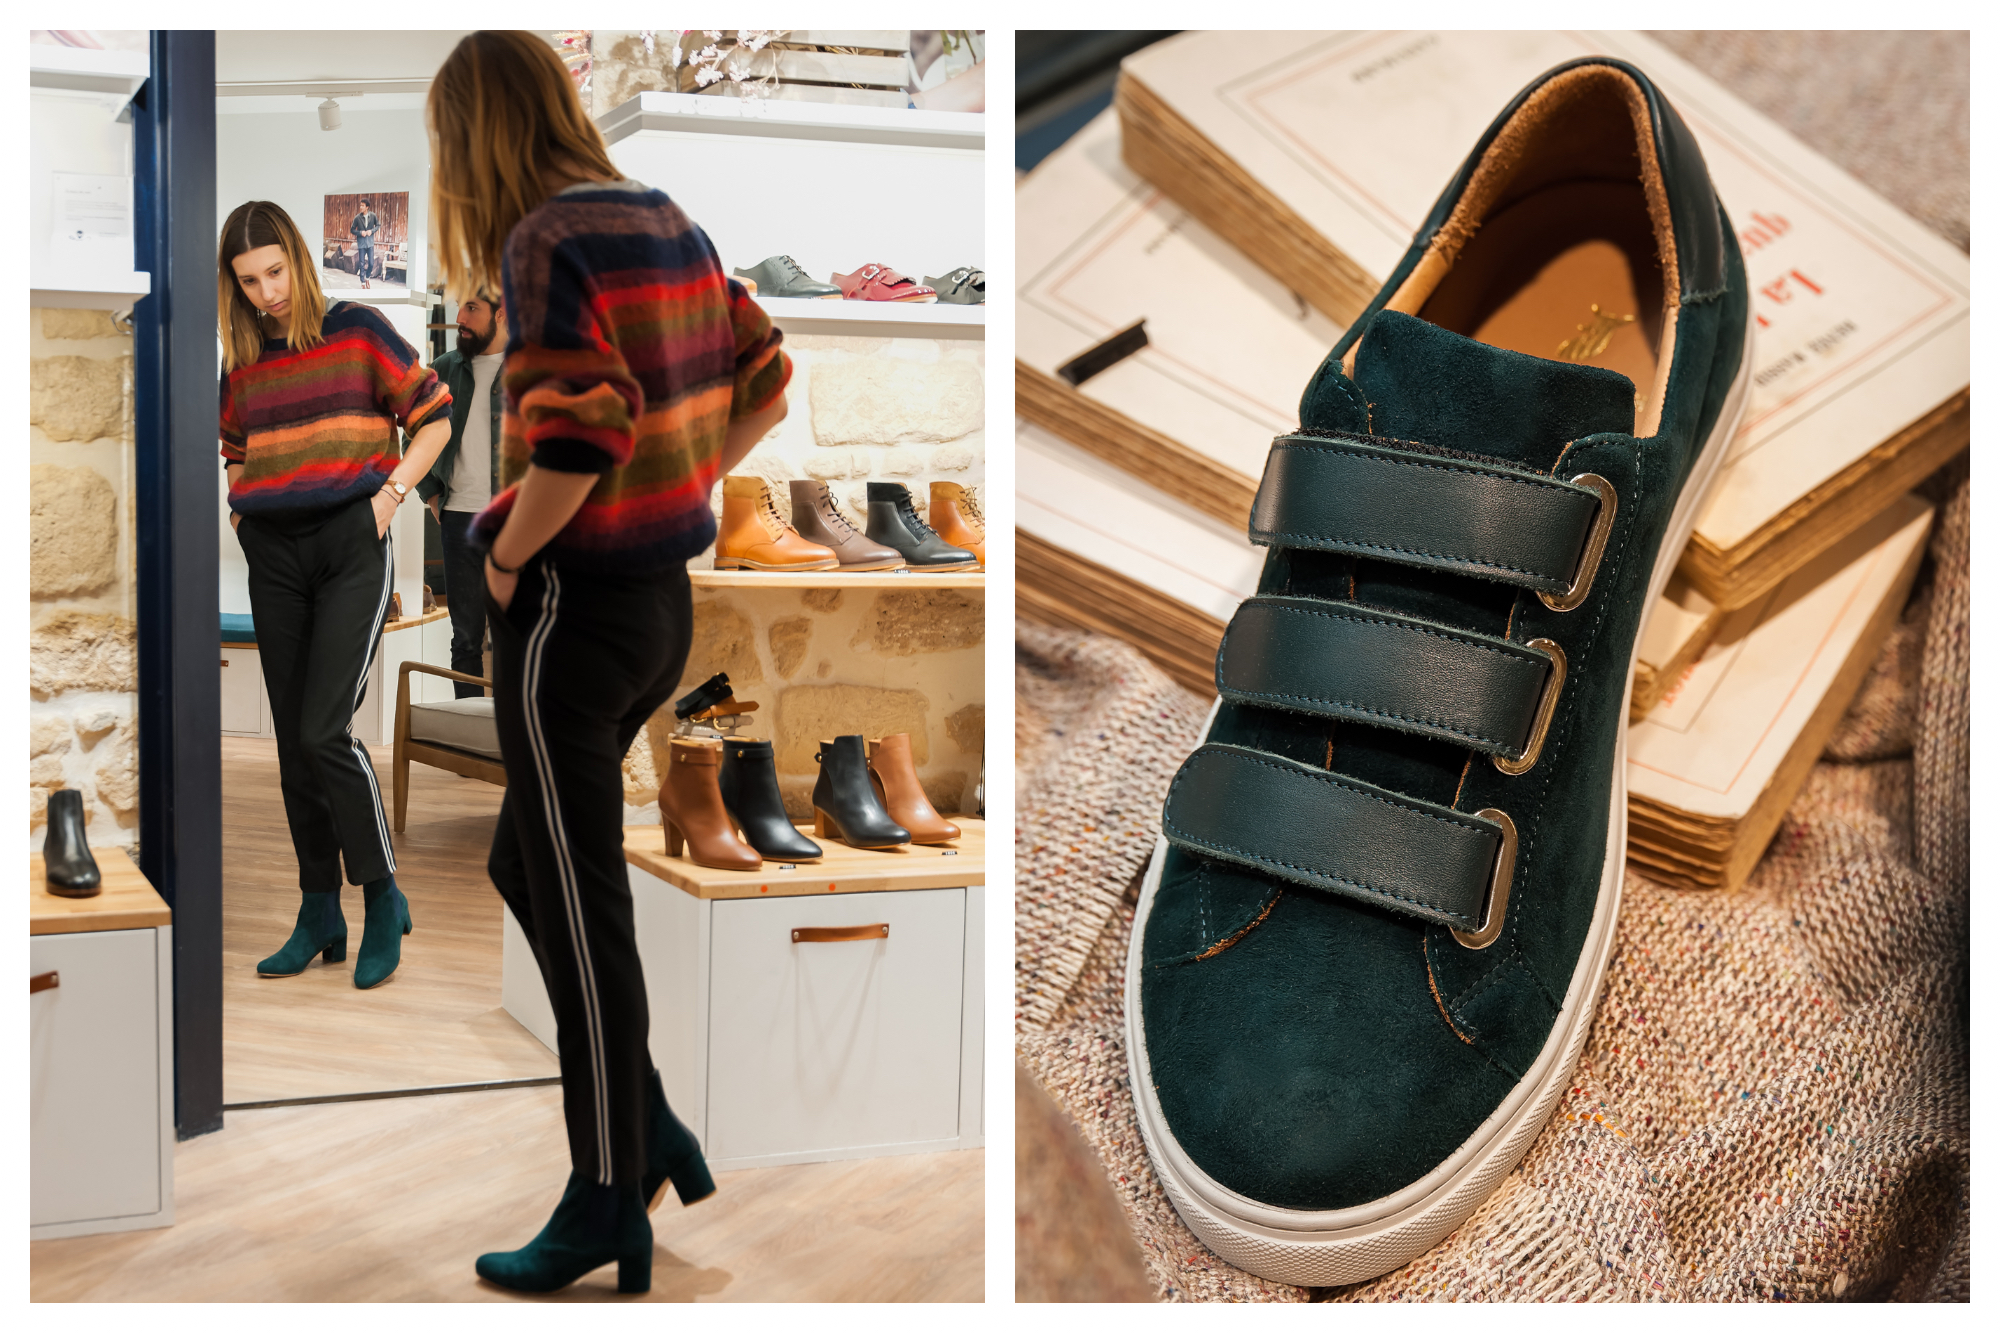 Customer trying on Pied de Biche leather ankle boots in front of the mirror (left). A Pied de Biche velcro green sneaker (right).